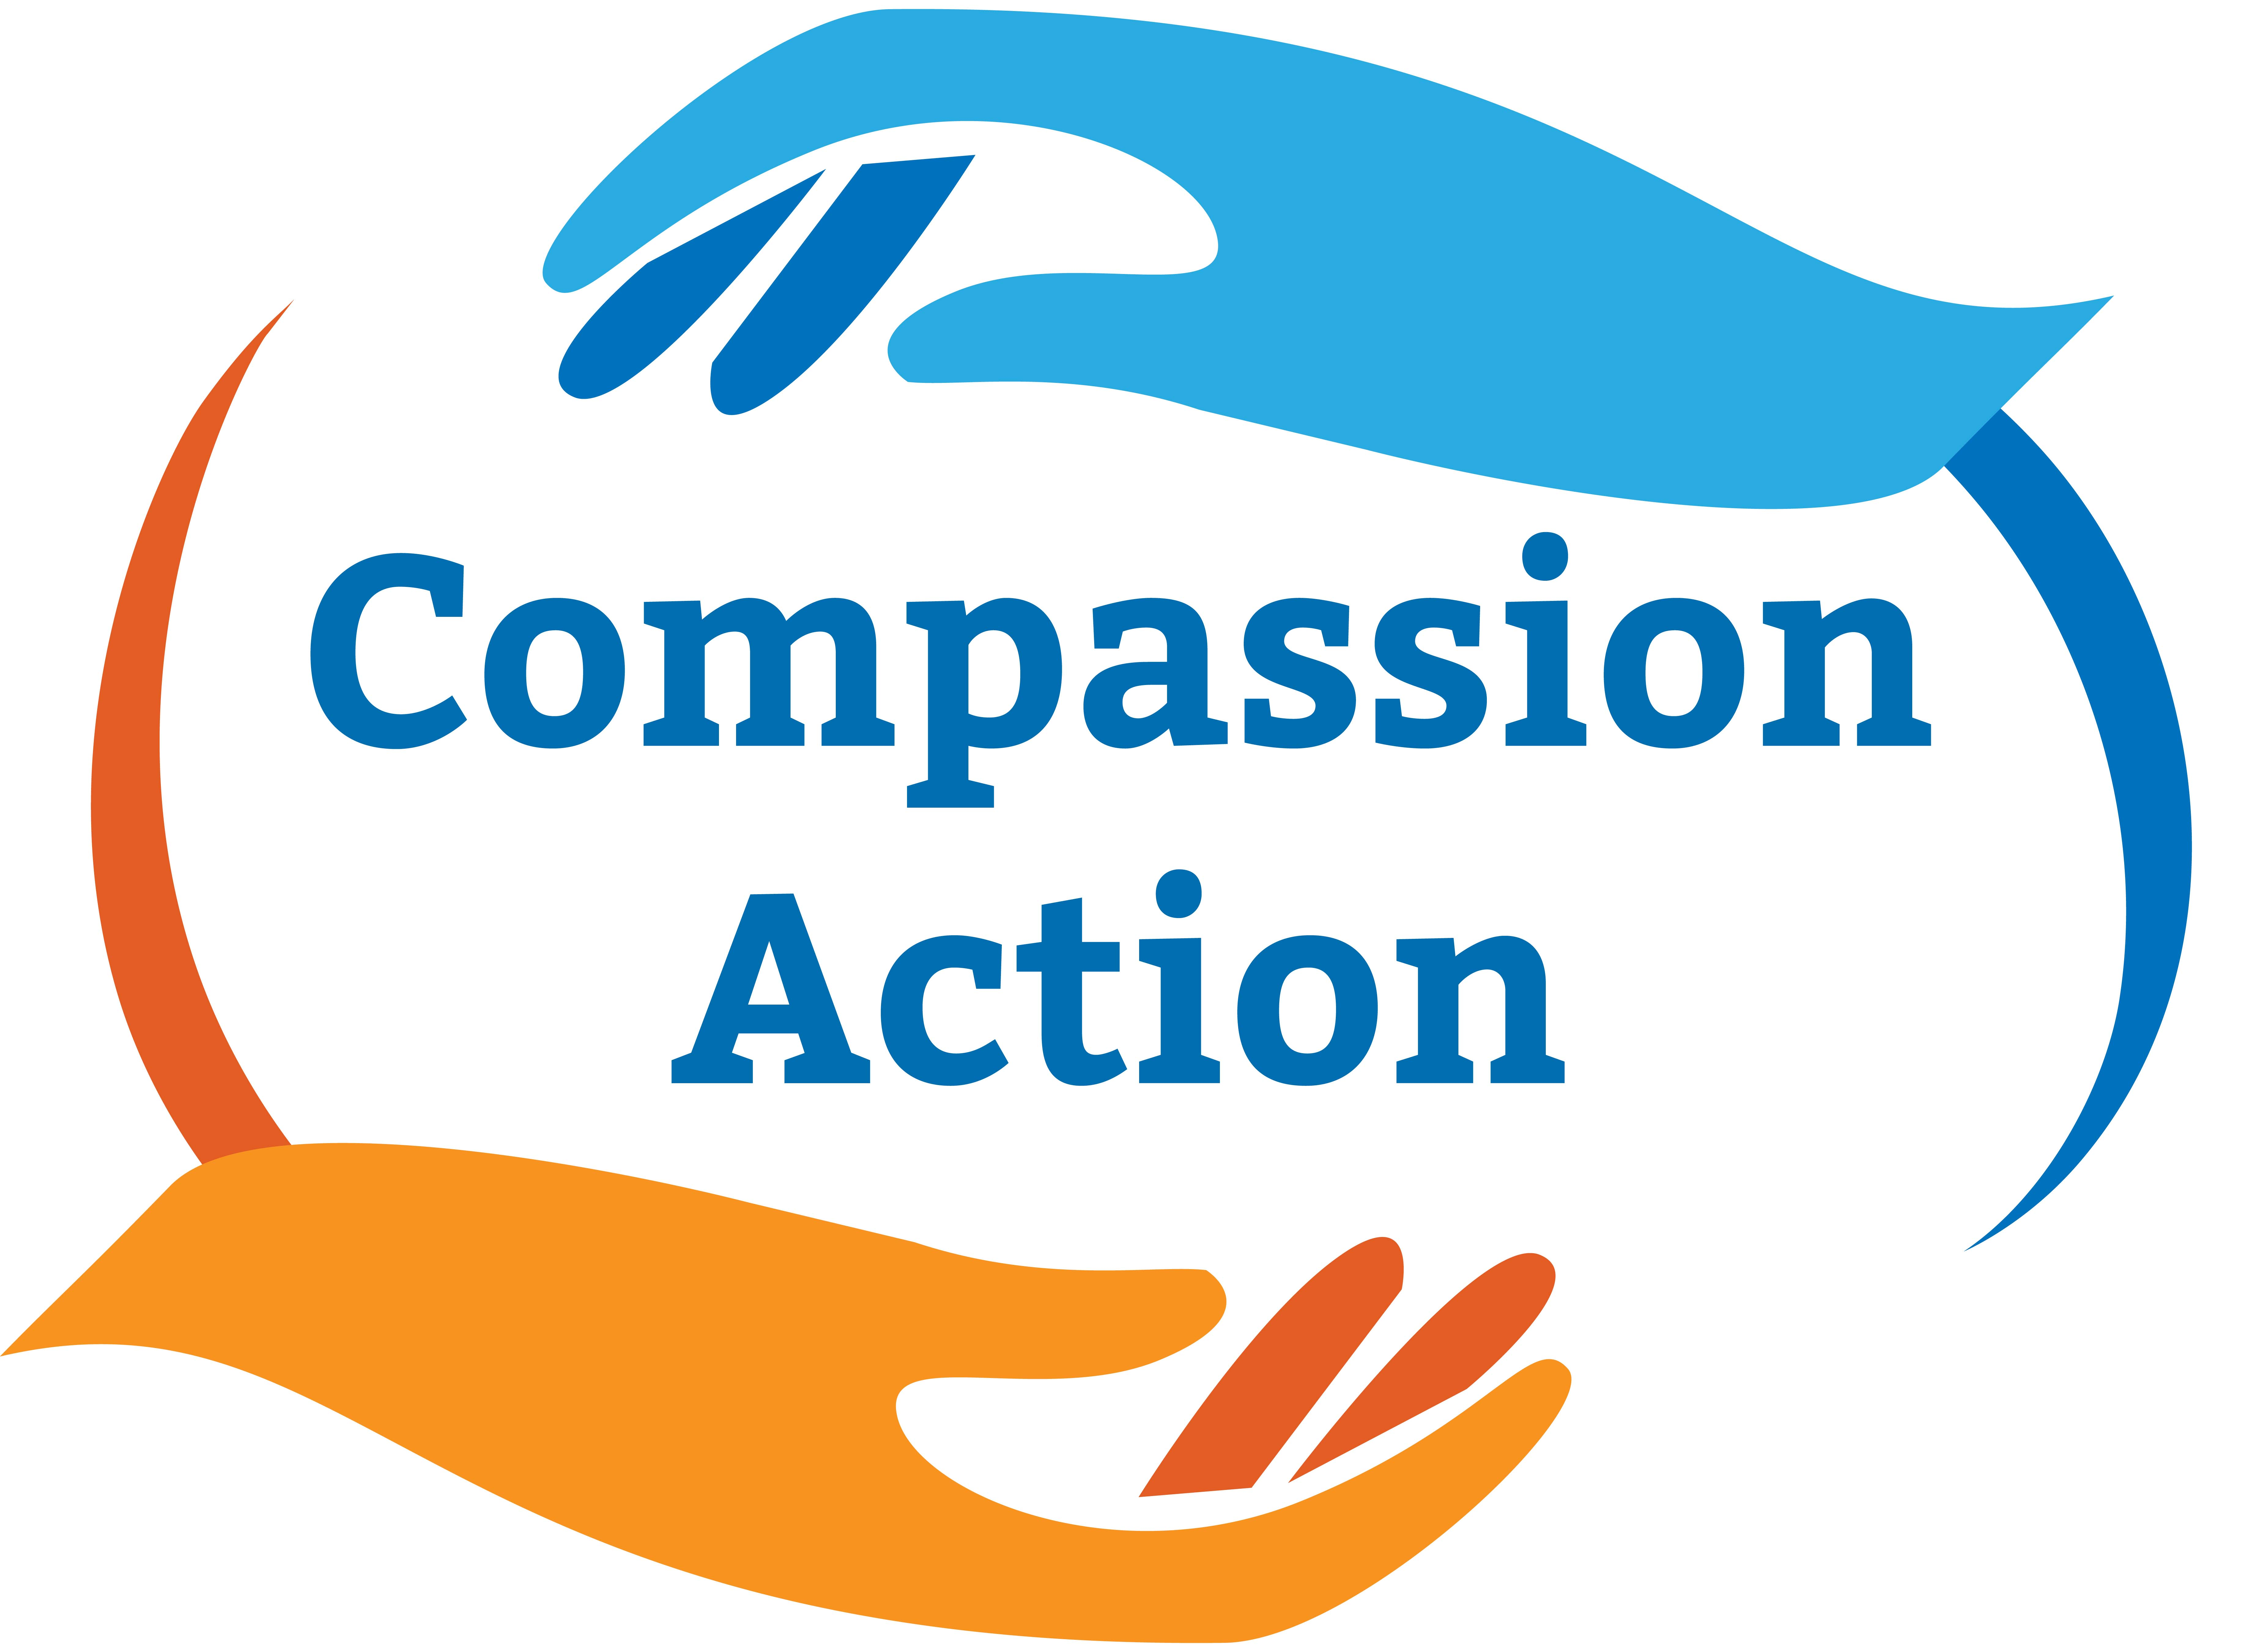 Compassion Action Foundation